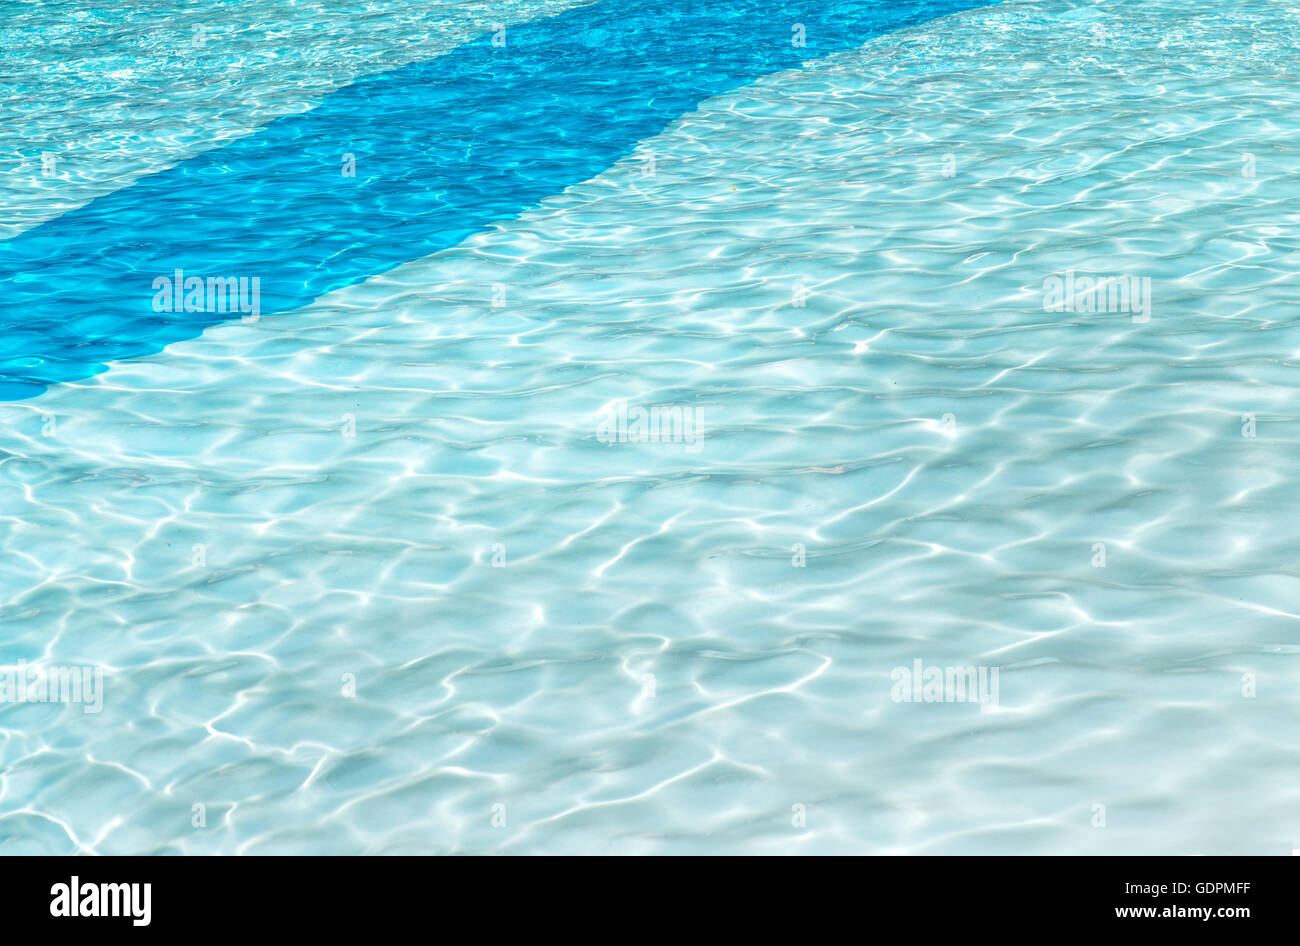 Swimming Pool Background clear swimming pool background with sun reflection ripples in a